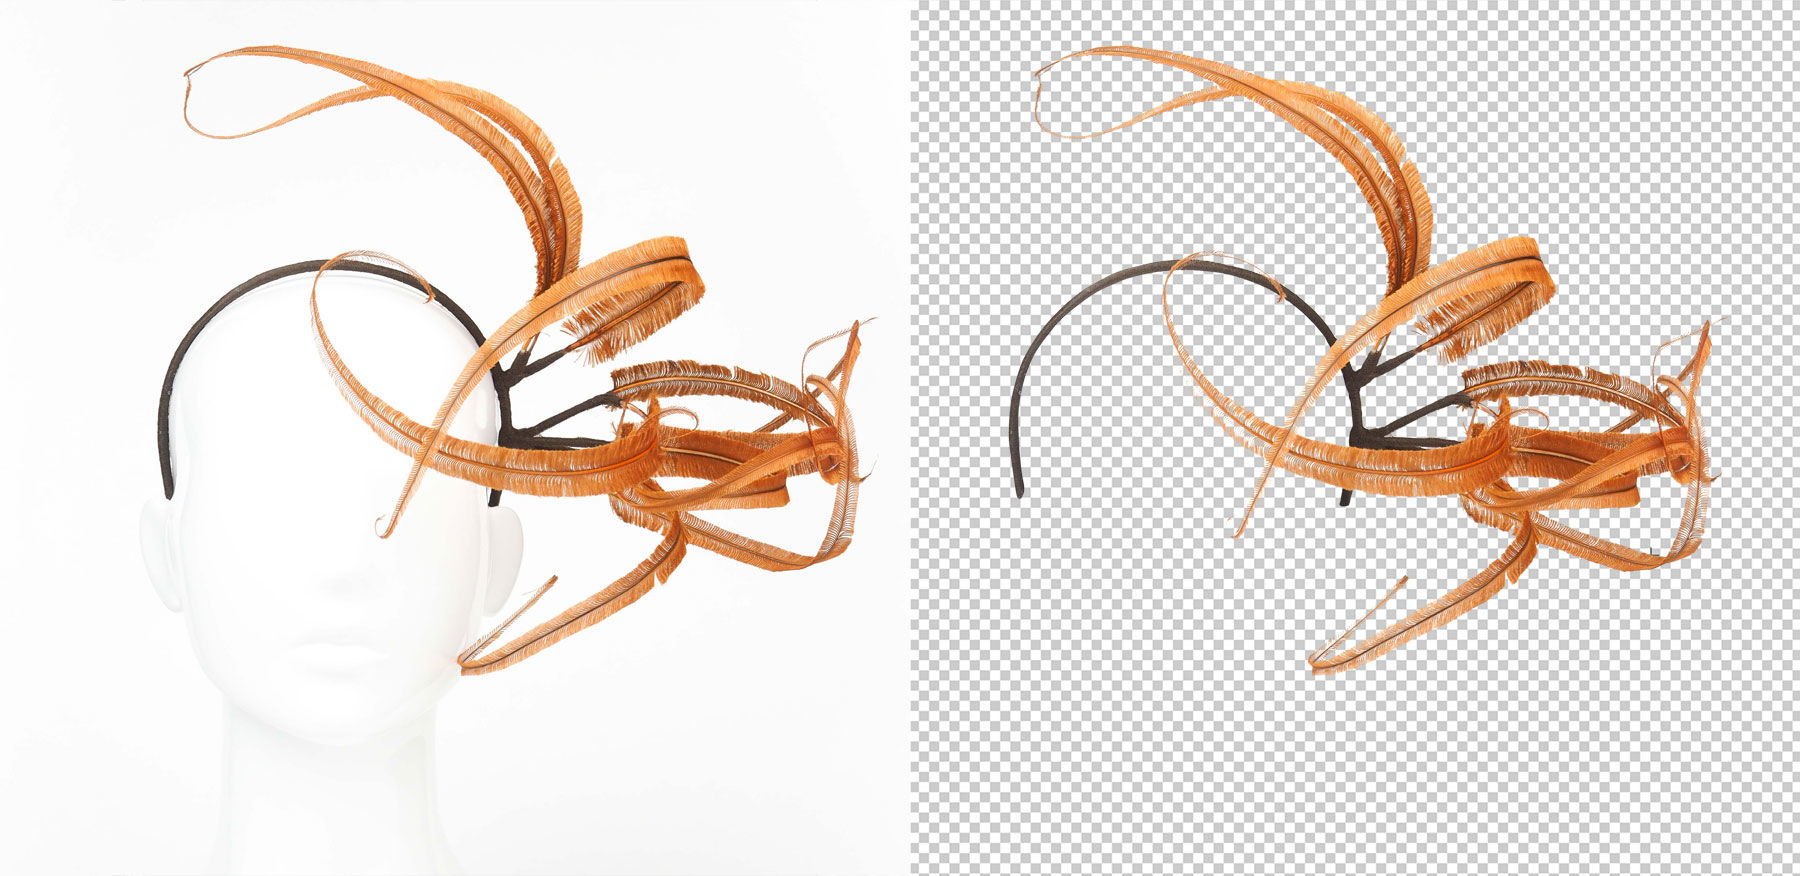 A proper guide to add clipping path in Photoshop